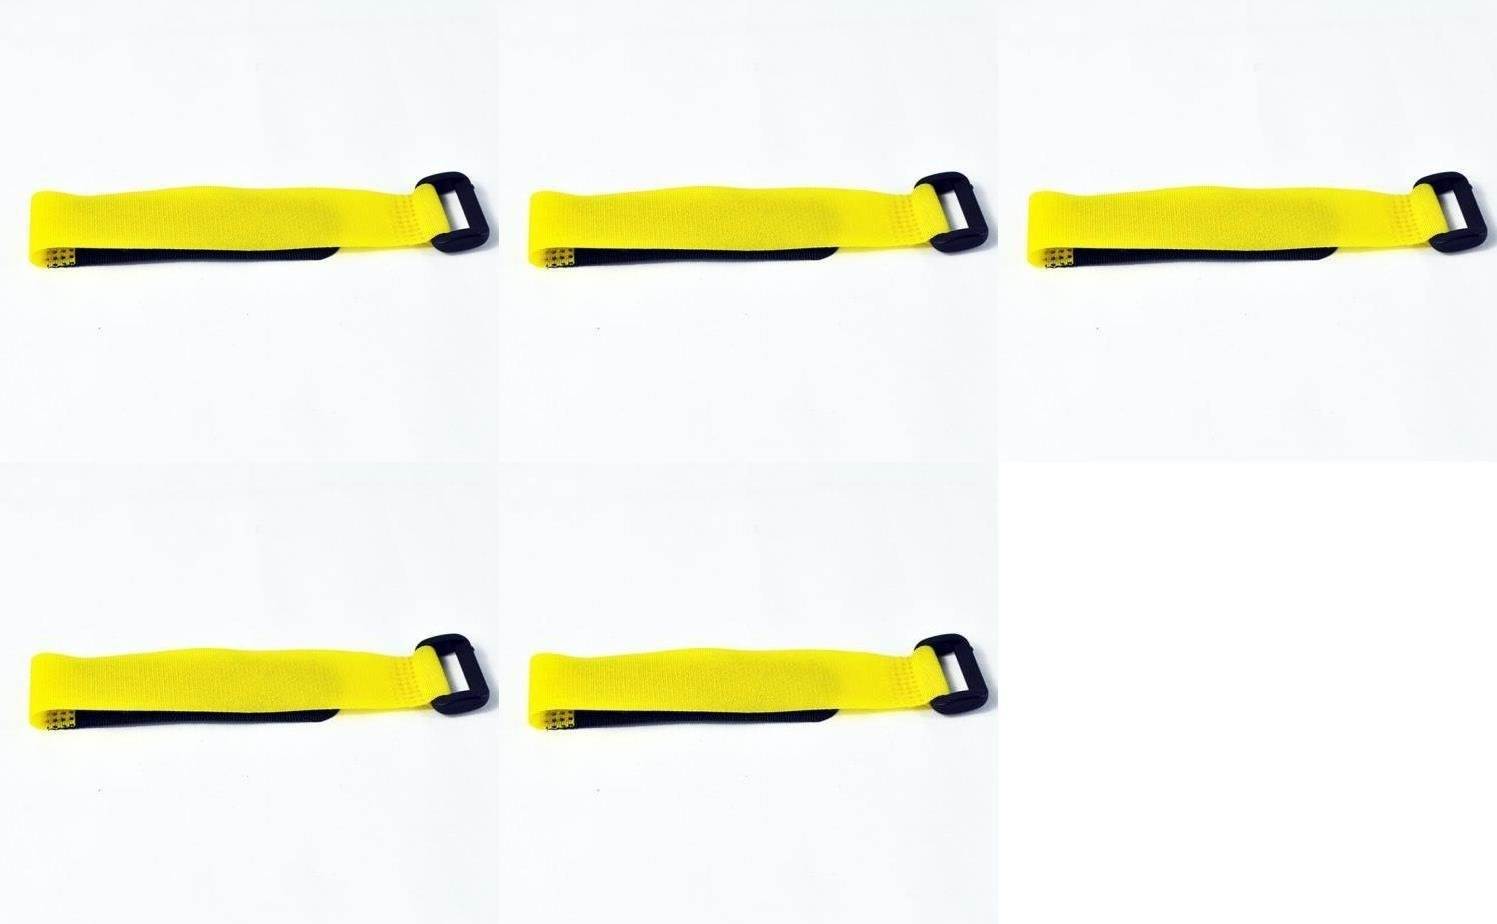 5 x Quantity of Walkera Runner 250 (R) Advanced GPS Quadcopter Drone 20mm Gelb Battery Strap 250-Z-27 Velcro Wrap Quadcopter Drone Part - FAST FREE SHIPPING FROM Orlando, Florida USA!